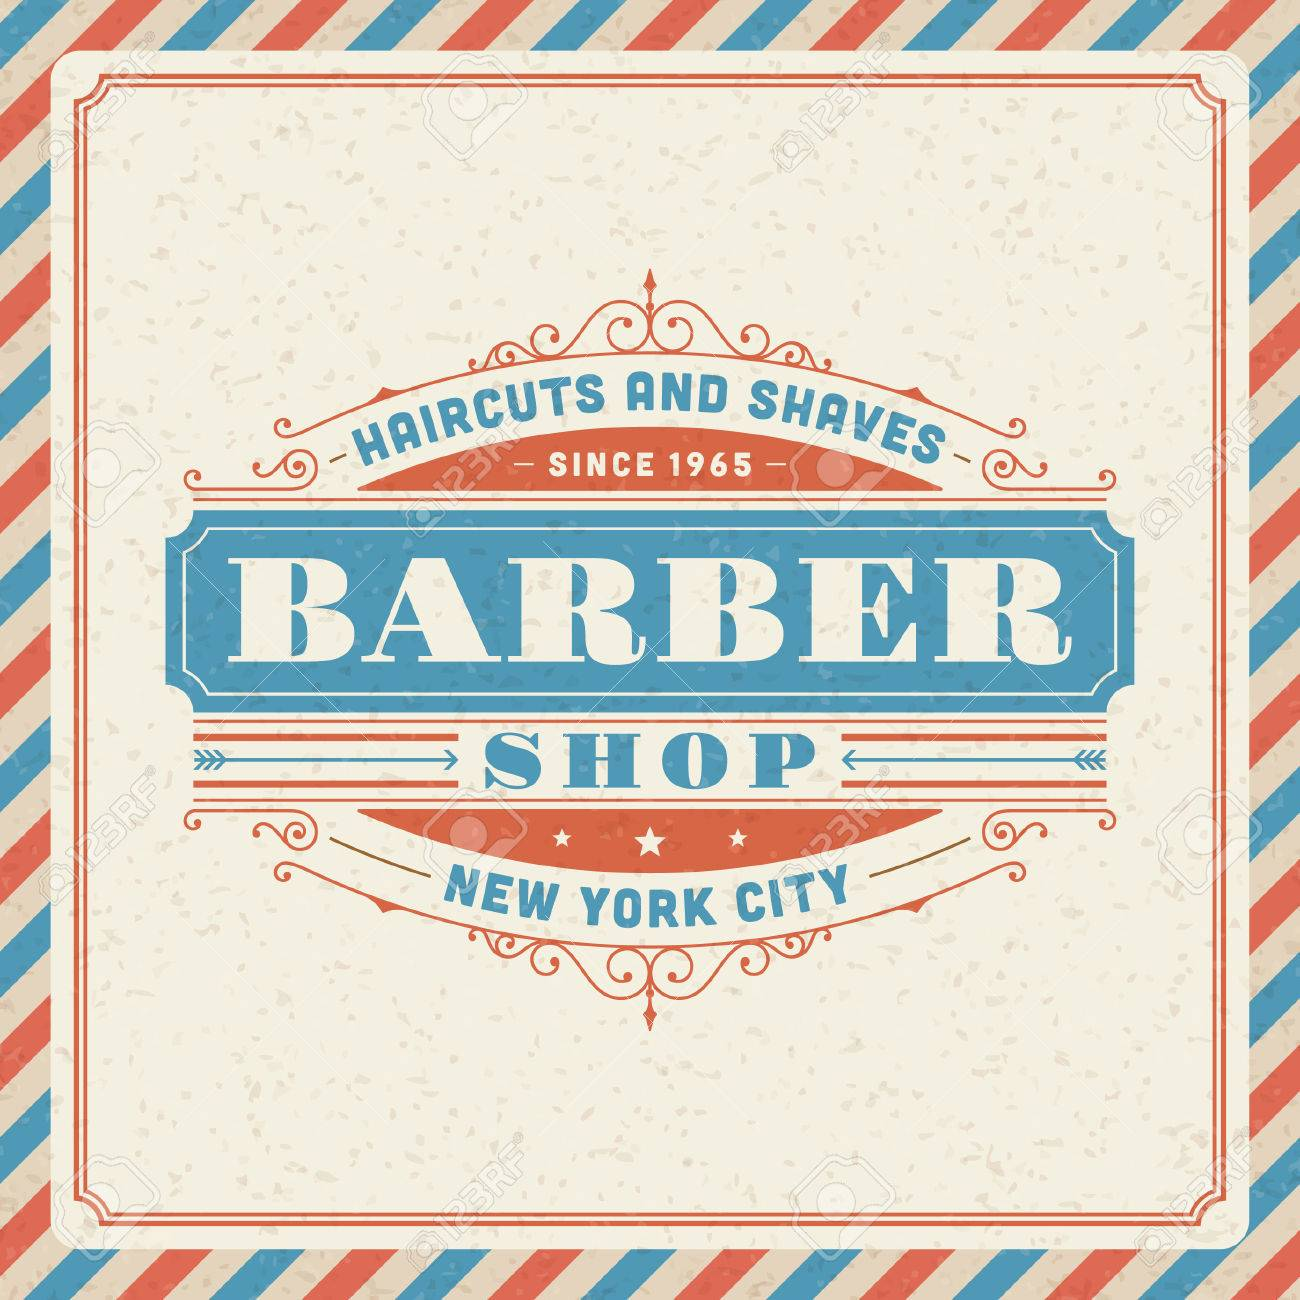 Barber Shop Vintage Retro Typography Template Royalty Free ...